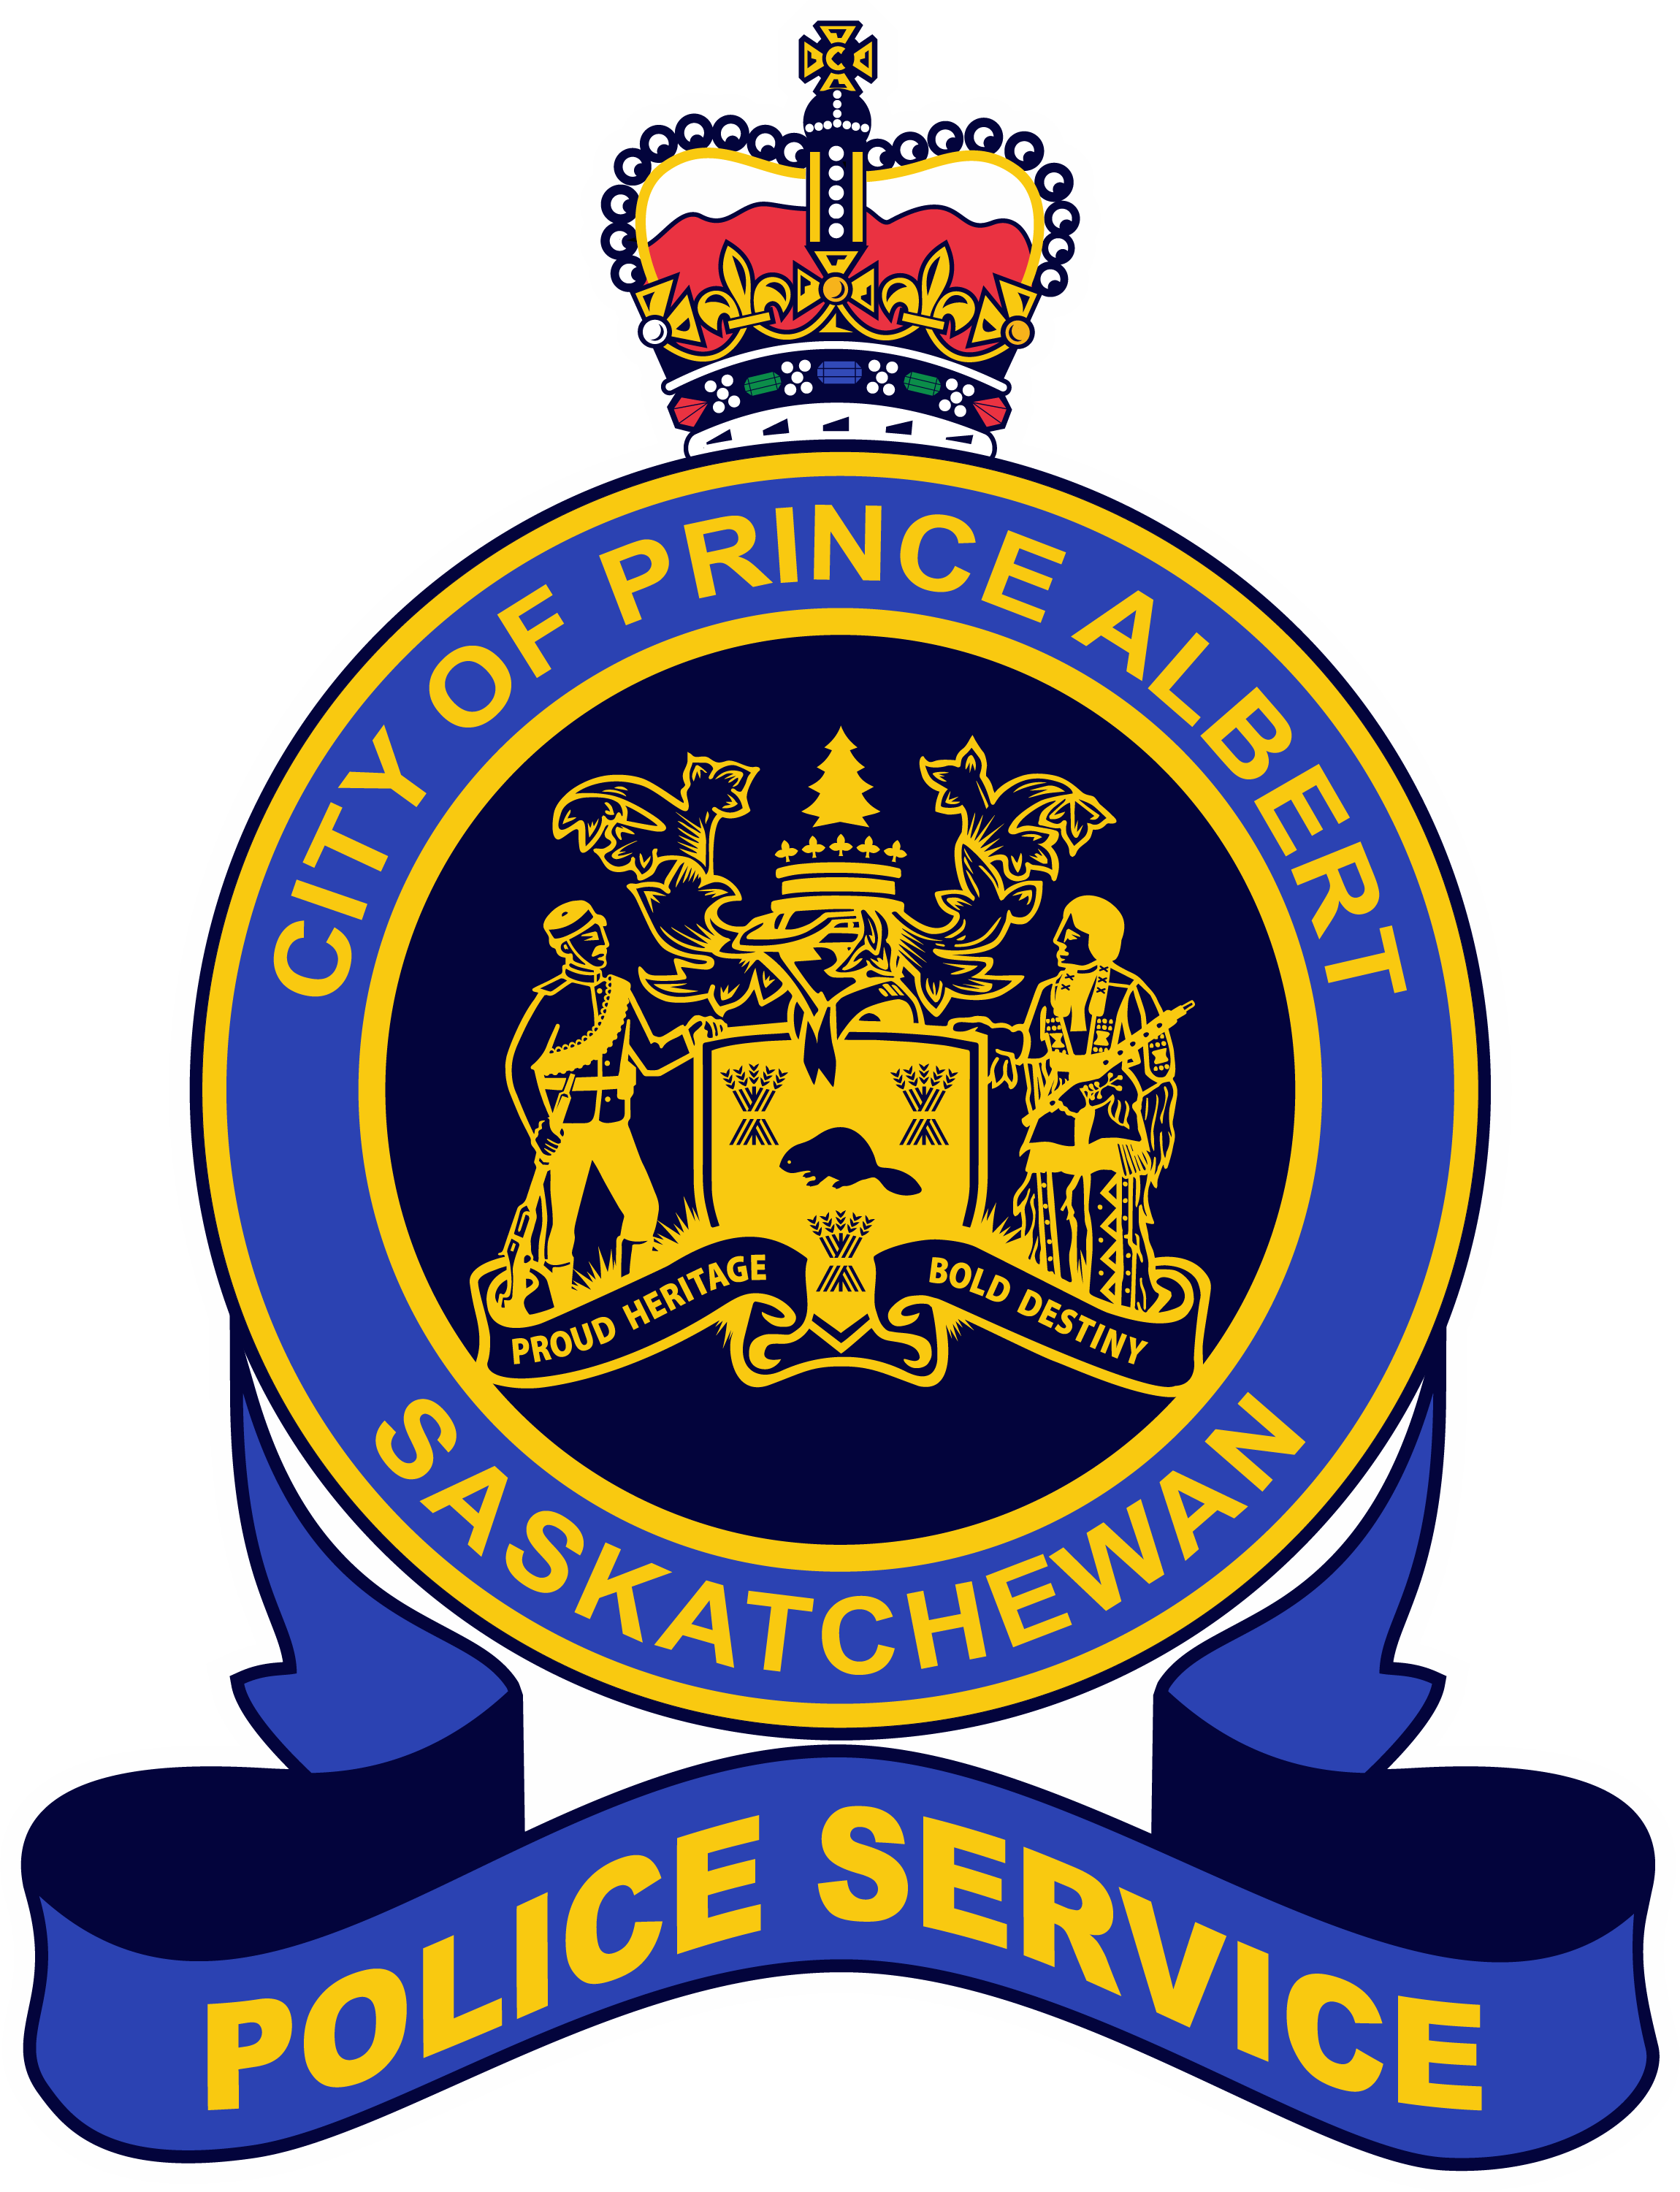 Media Release - Prince Albert Police Service reminding the public about online reporting amid concerns over COVID-19